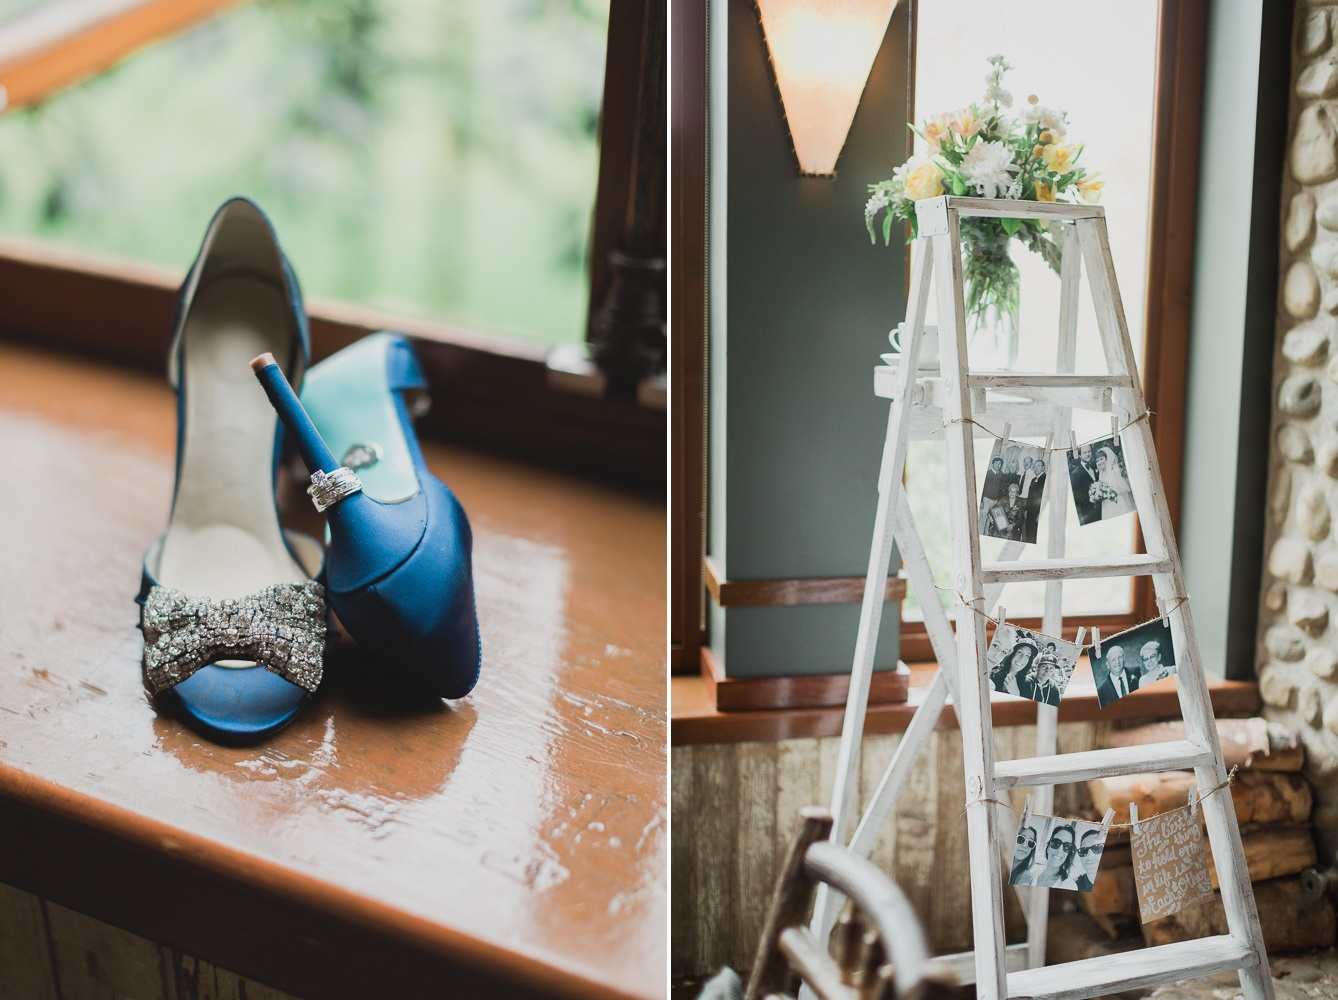 Blue Bridal Shoes - A Romantic & Intimate Wedding Full of Vintage Charm